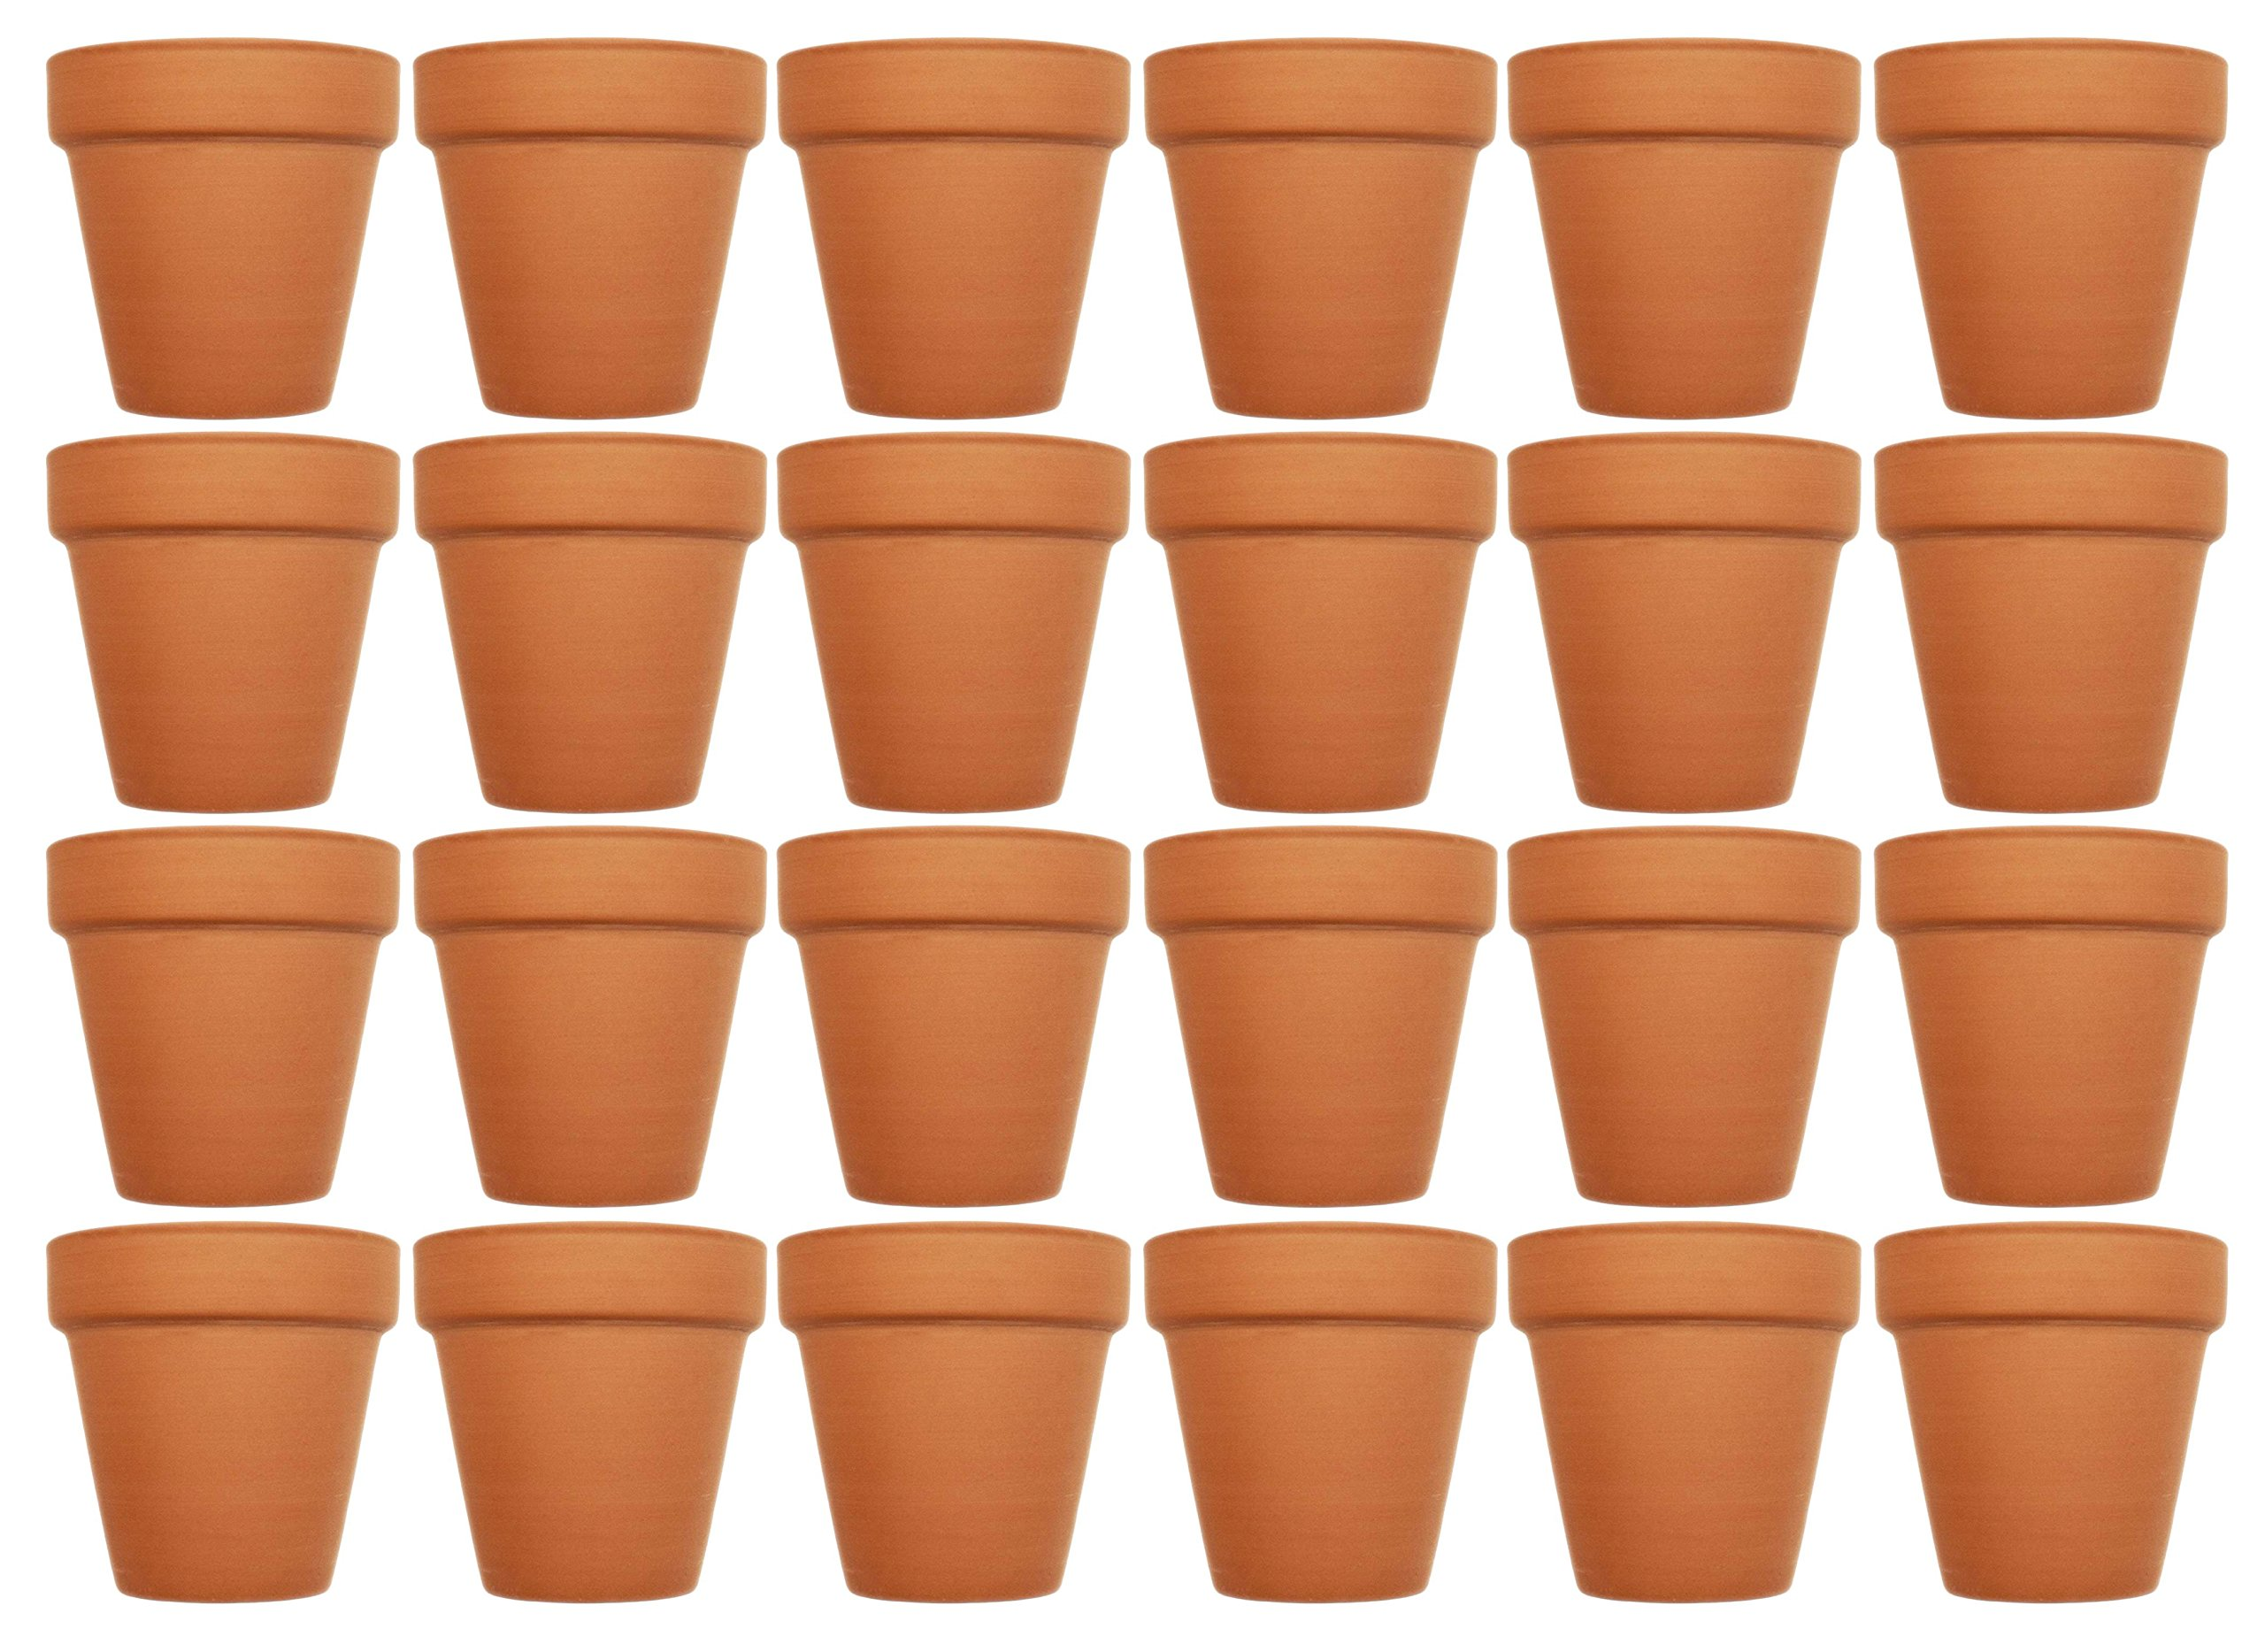 Set of 24 Terra Cotta Pots! 4'' x 3.75'' Pots Perfect for Vegetable or Flower Gardens! 4 inch Clay Terra Cotta Pots!